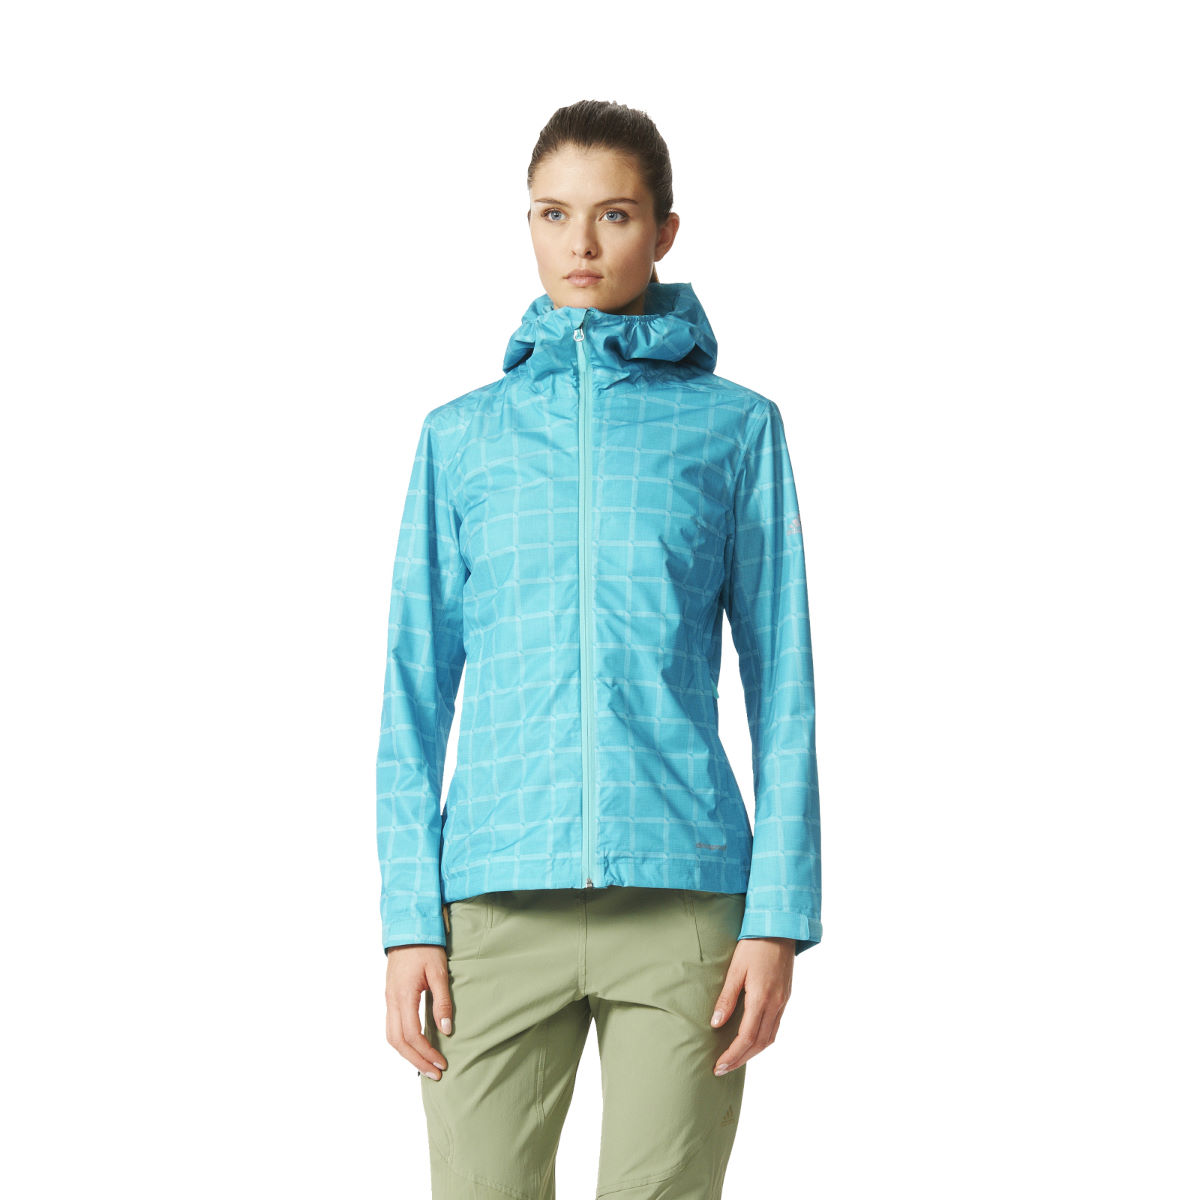 Adidas Womens AOP Wandertag Jacket (SS16)   Waterproof Jackets